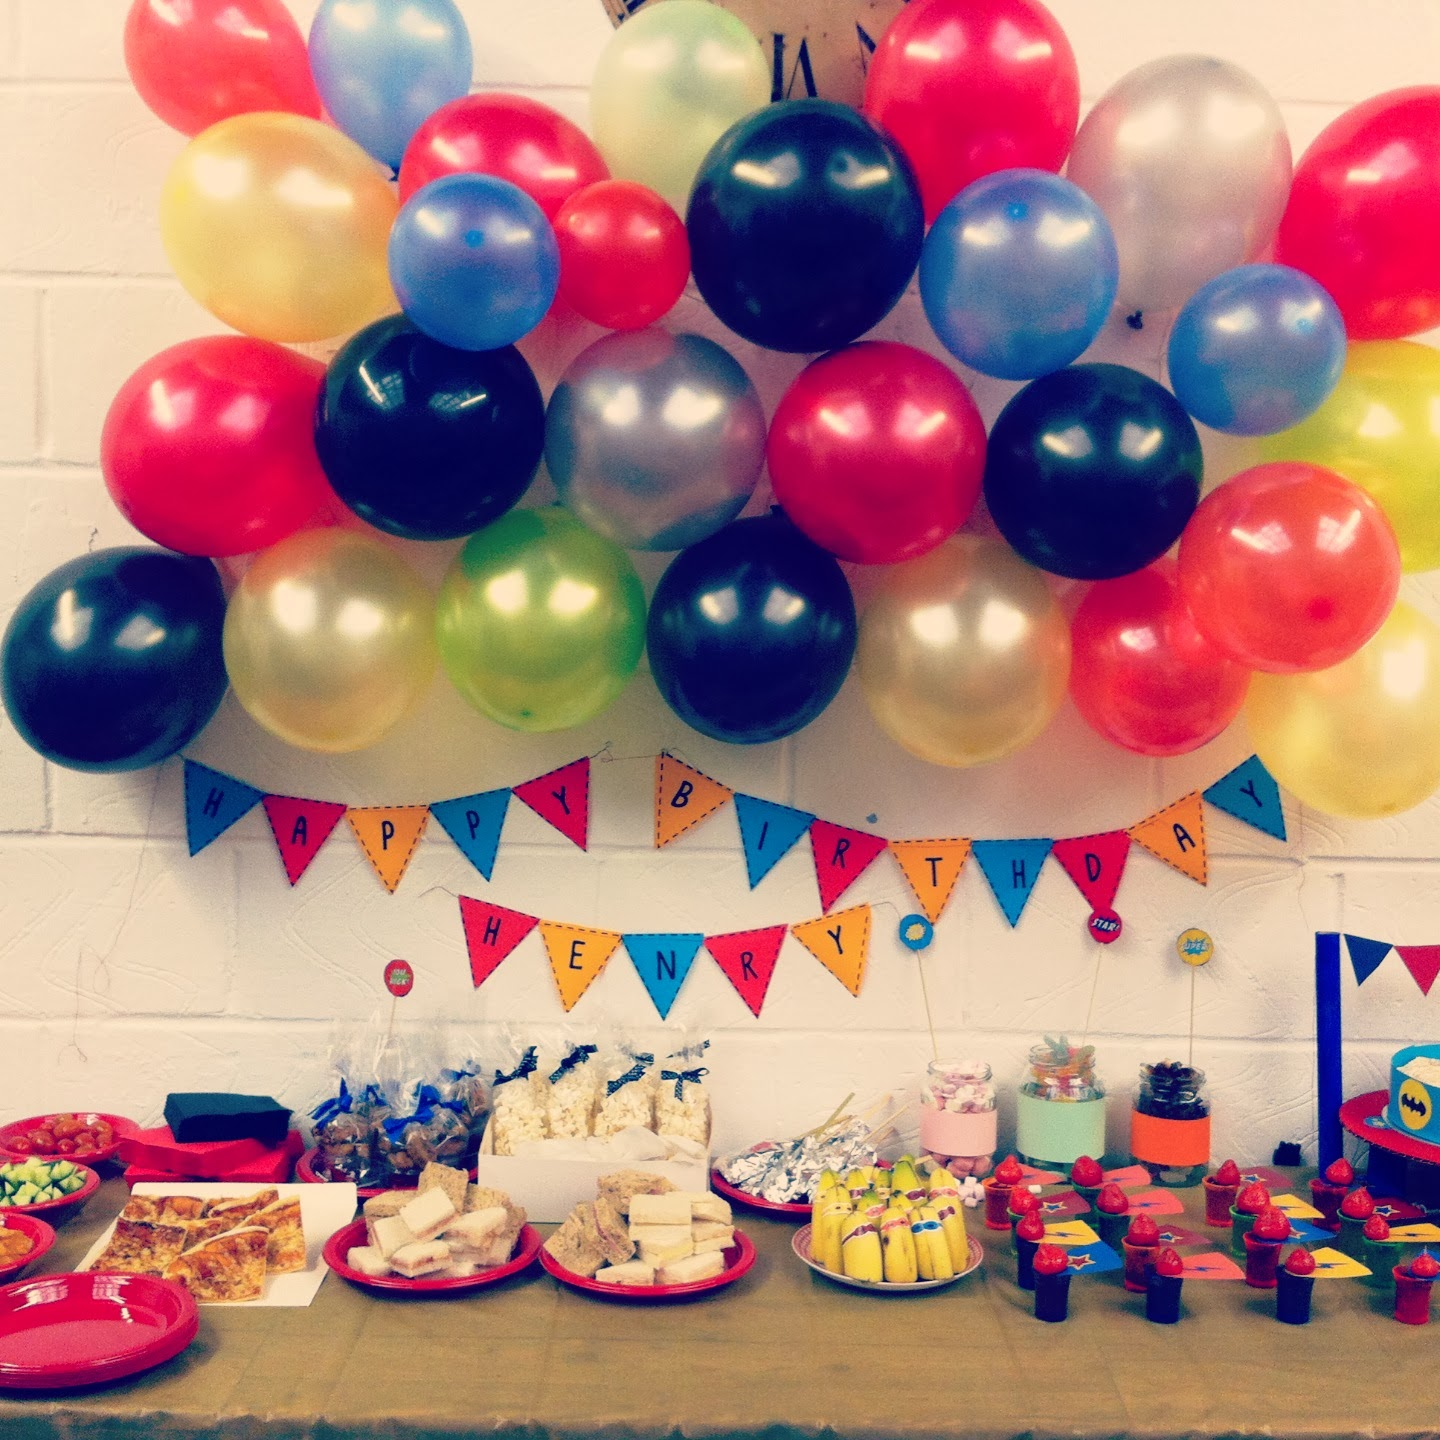 The Old School Club: Children - Decorations For Childrens Parties's parties: Superhero party preparations